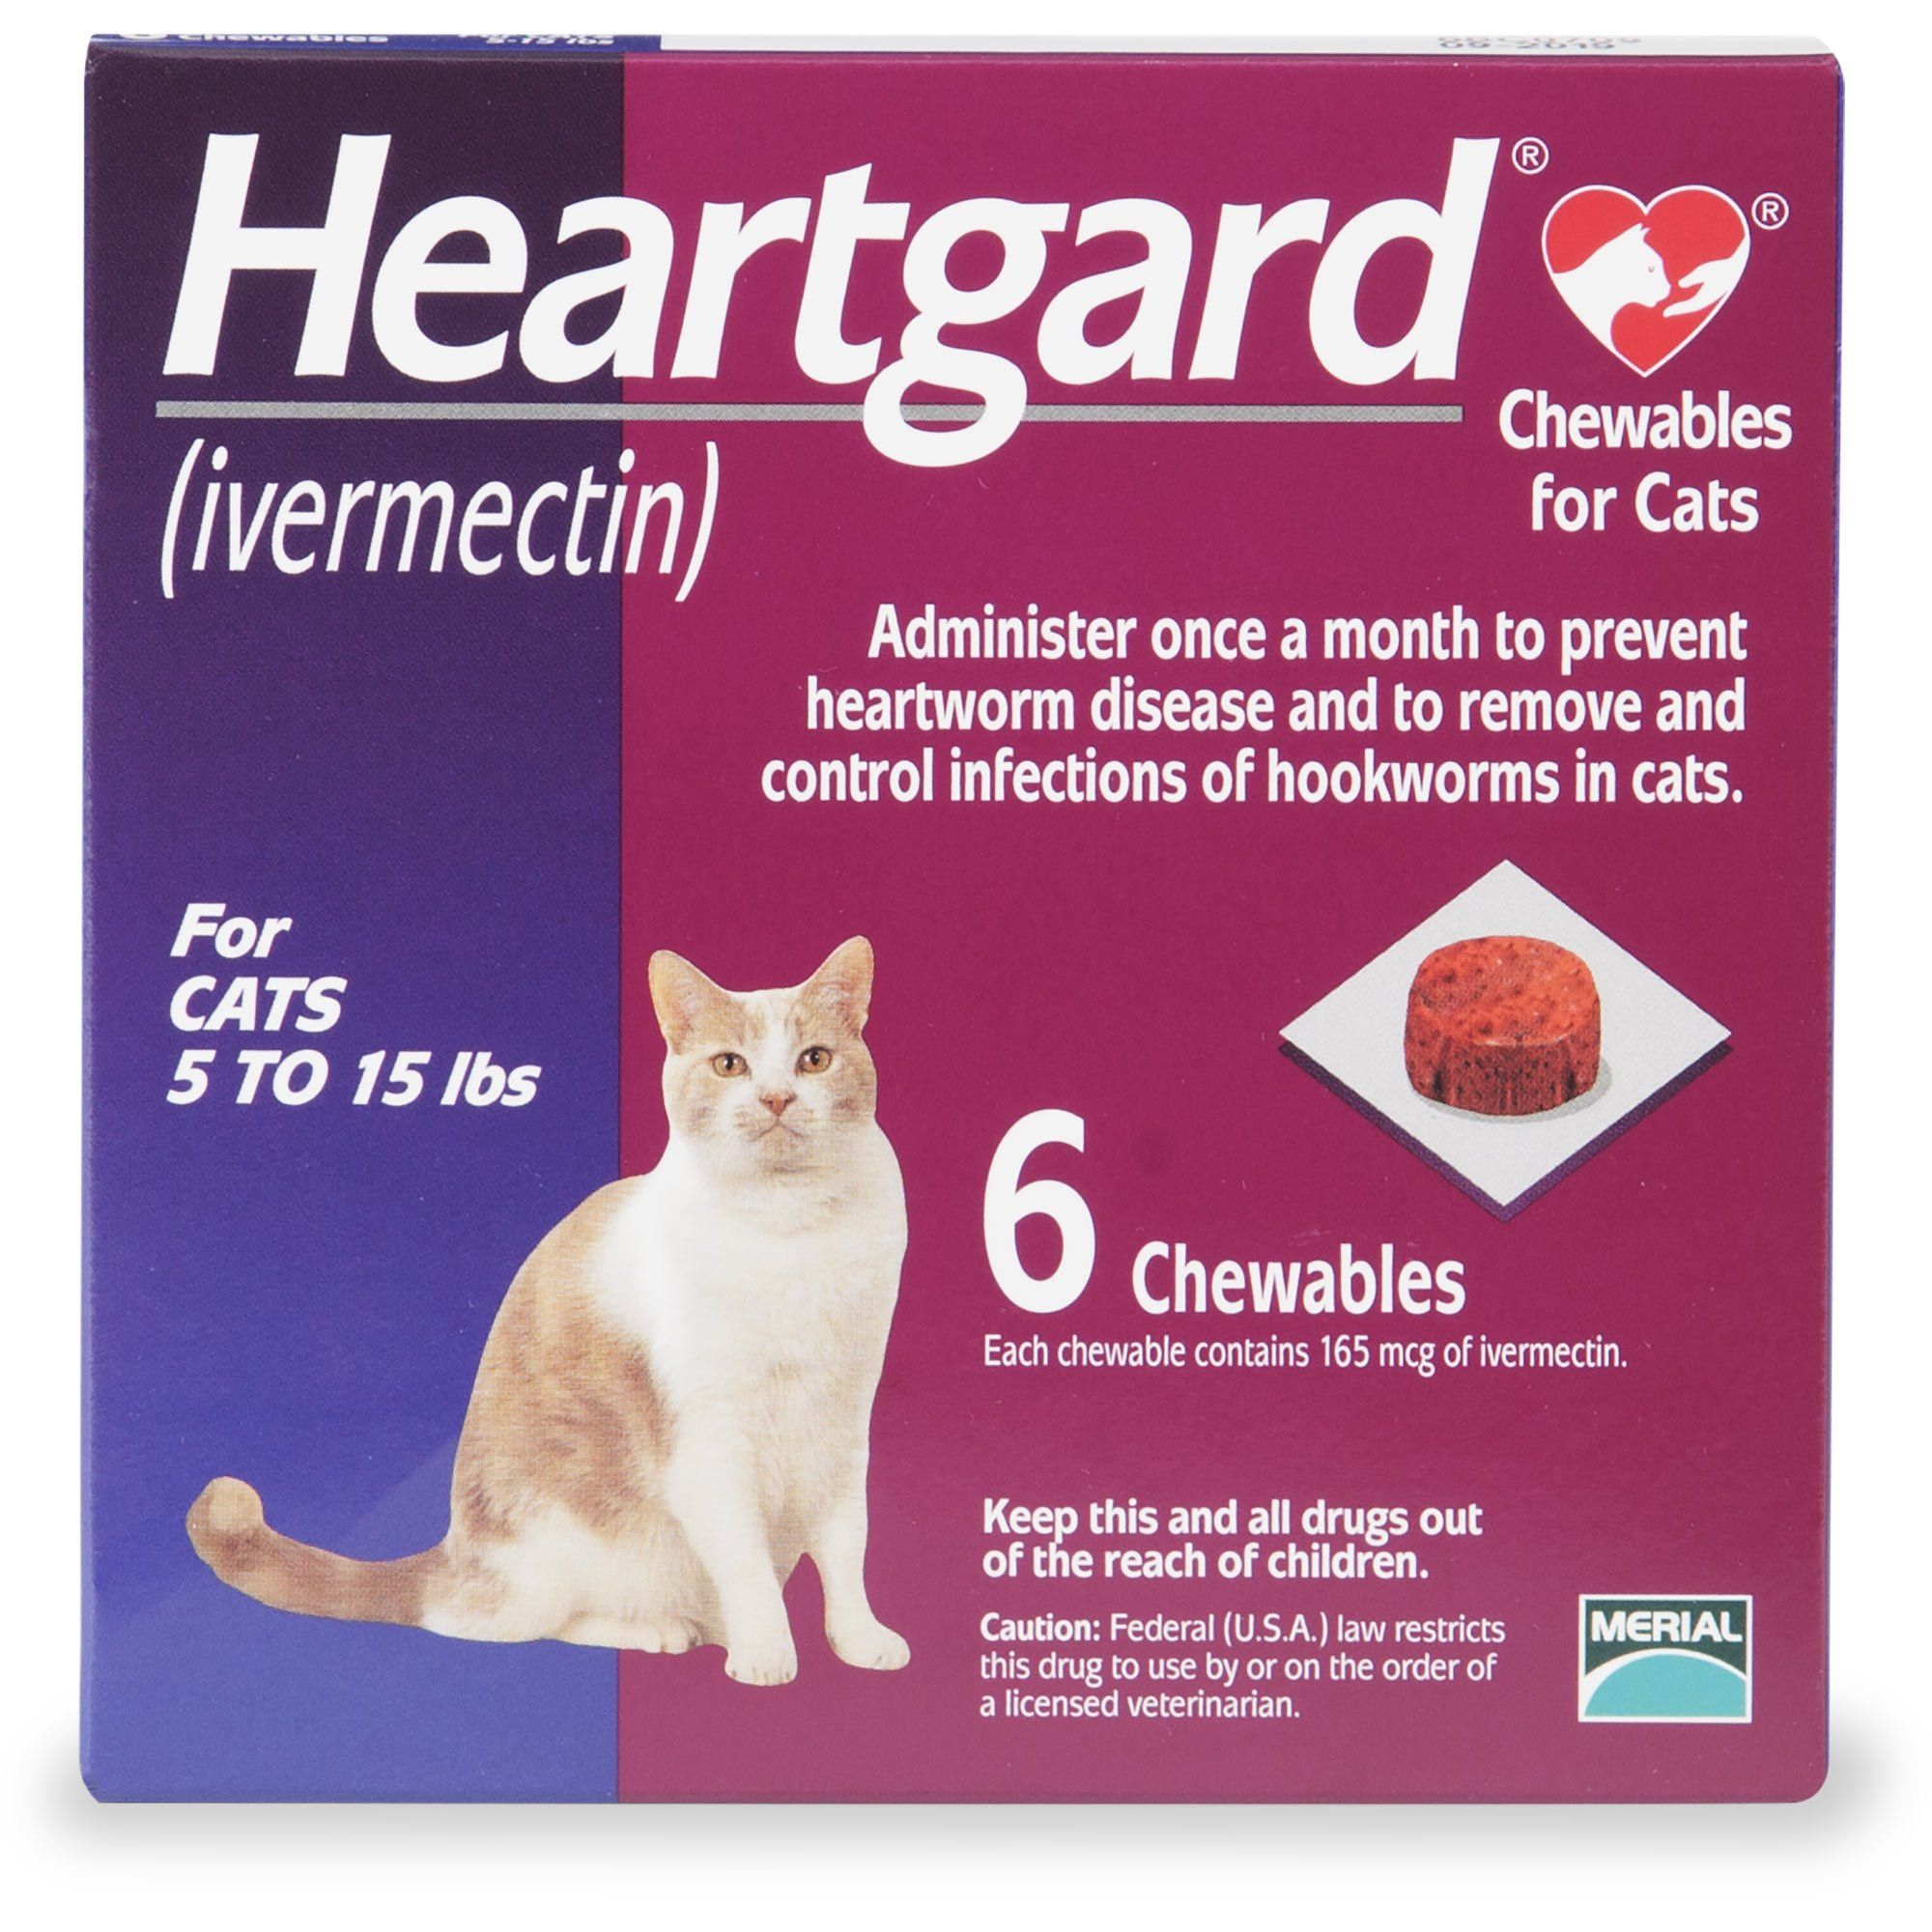 Heartgard Chewables for Cats 5 to 15 lbs., 6 Pack Pet